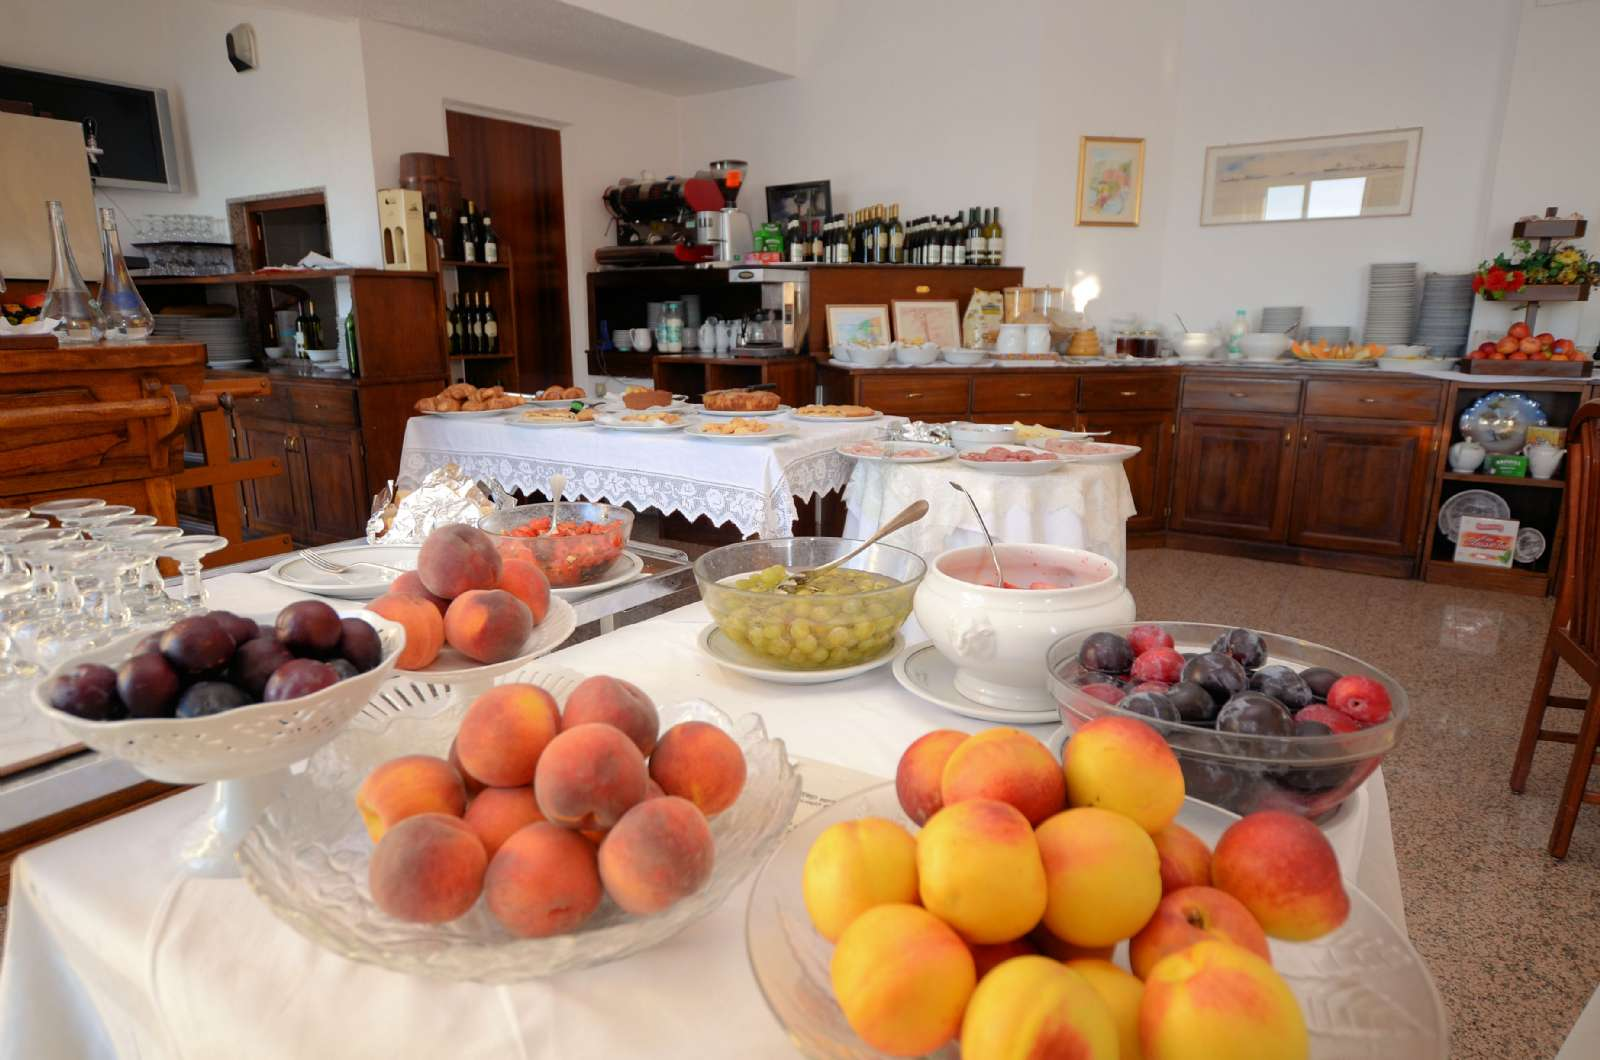 Breakfast buffet with fruit, homemade cakes, etc.